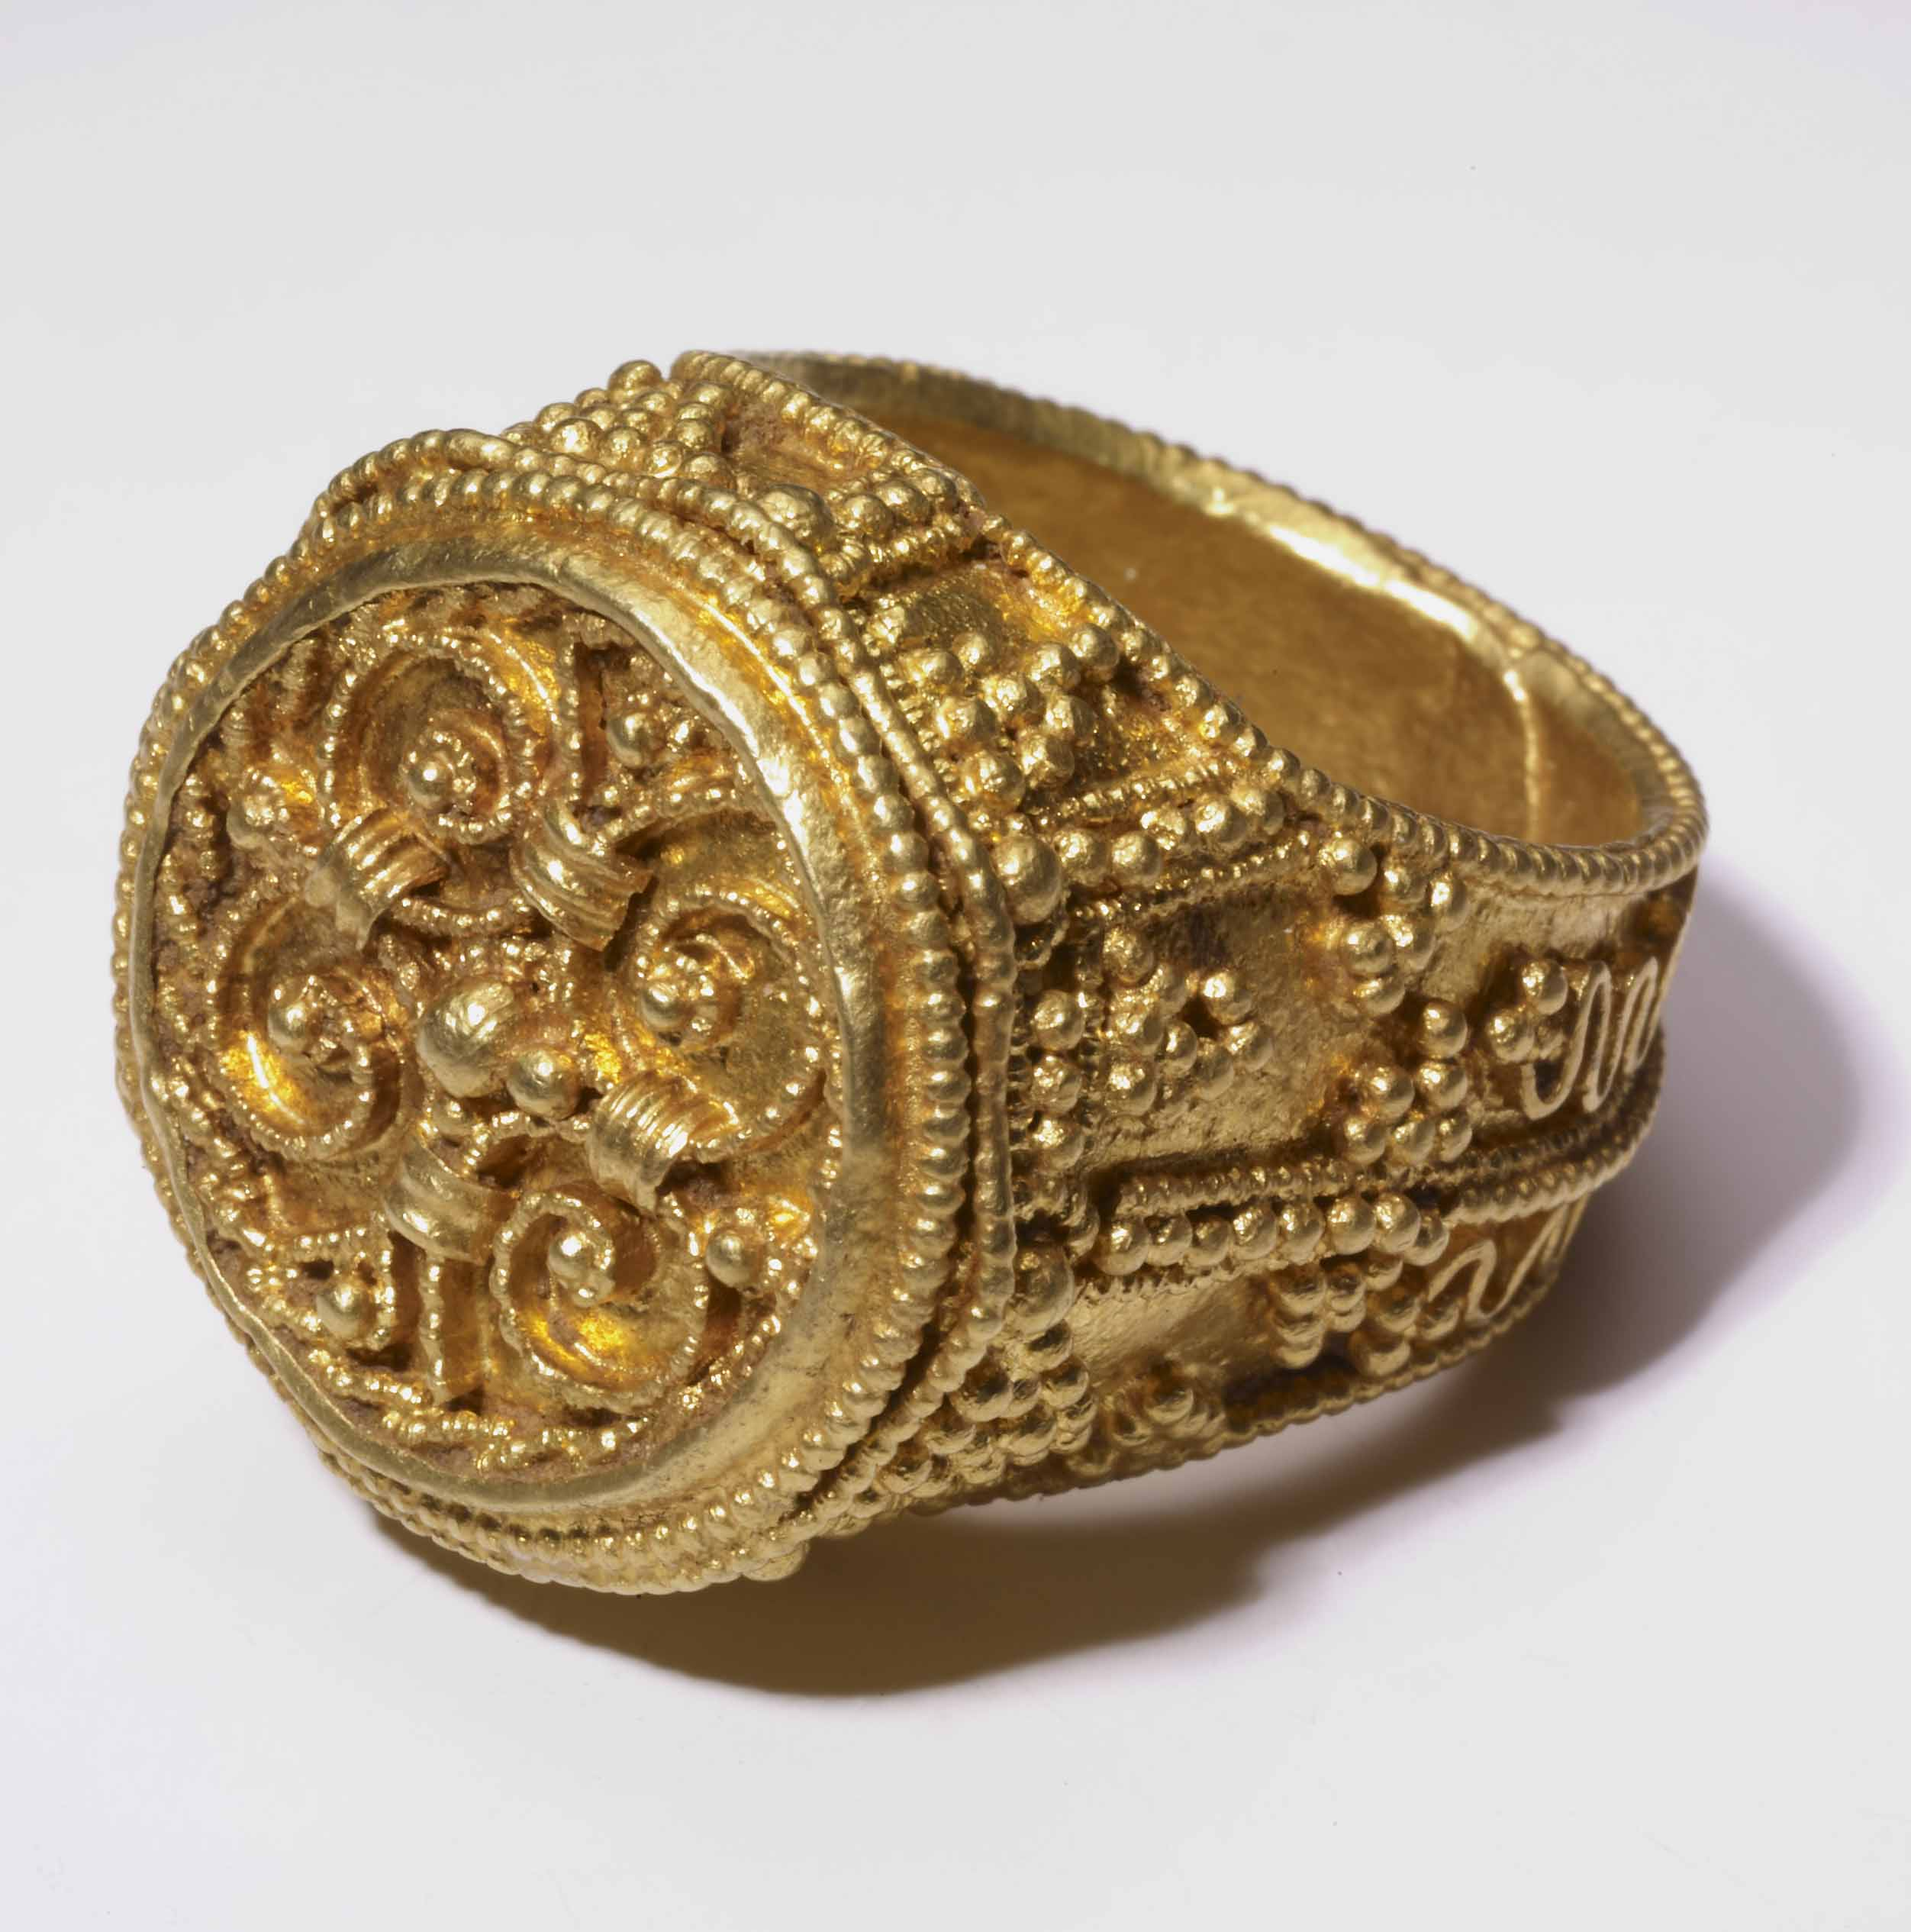 Medieval gold ring with circular face and detailed filigree design.